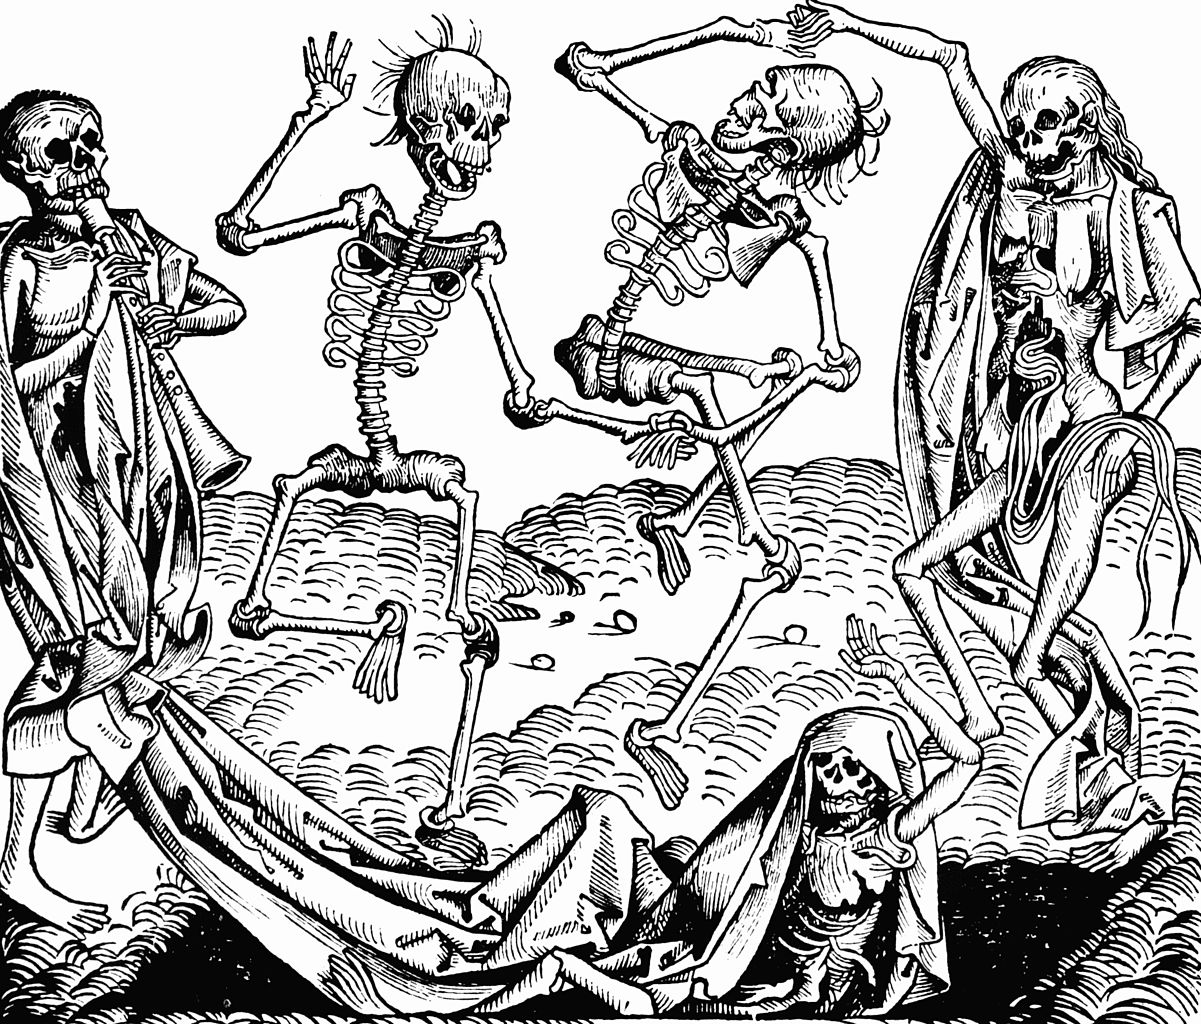 01. Nuremberg chronicles – Dance of Death. 1493